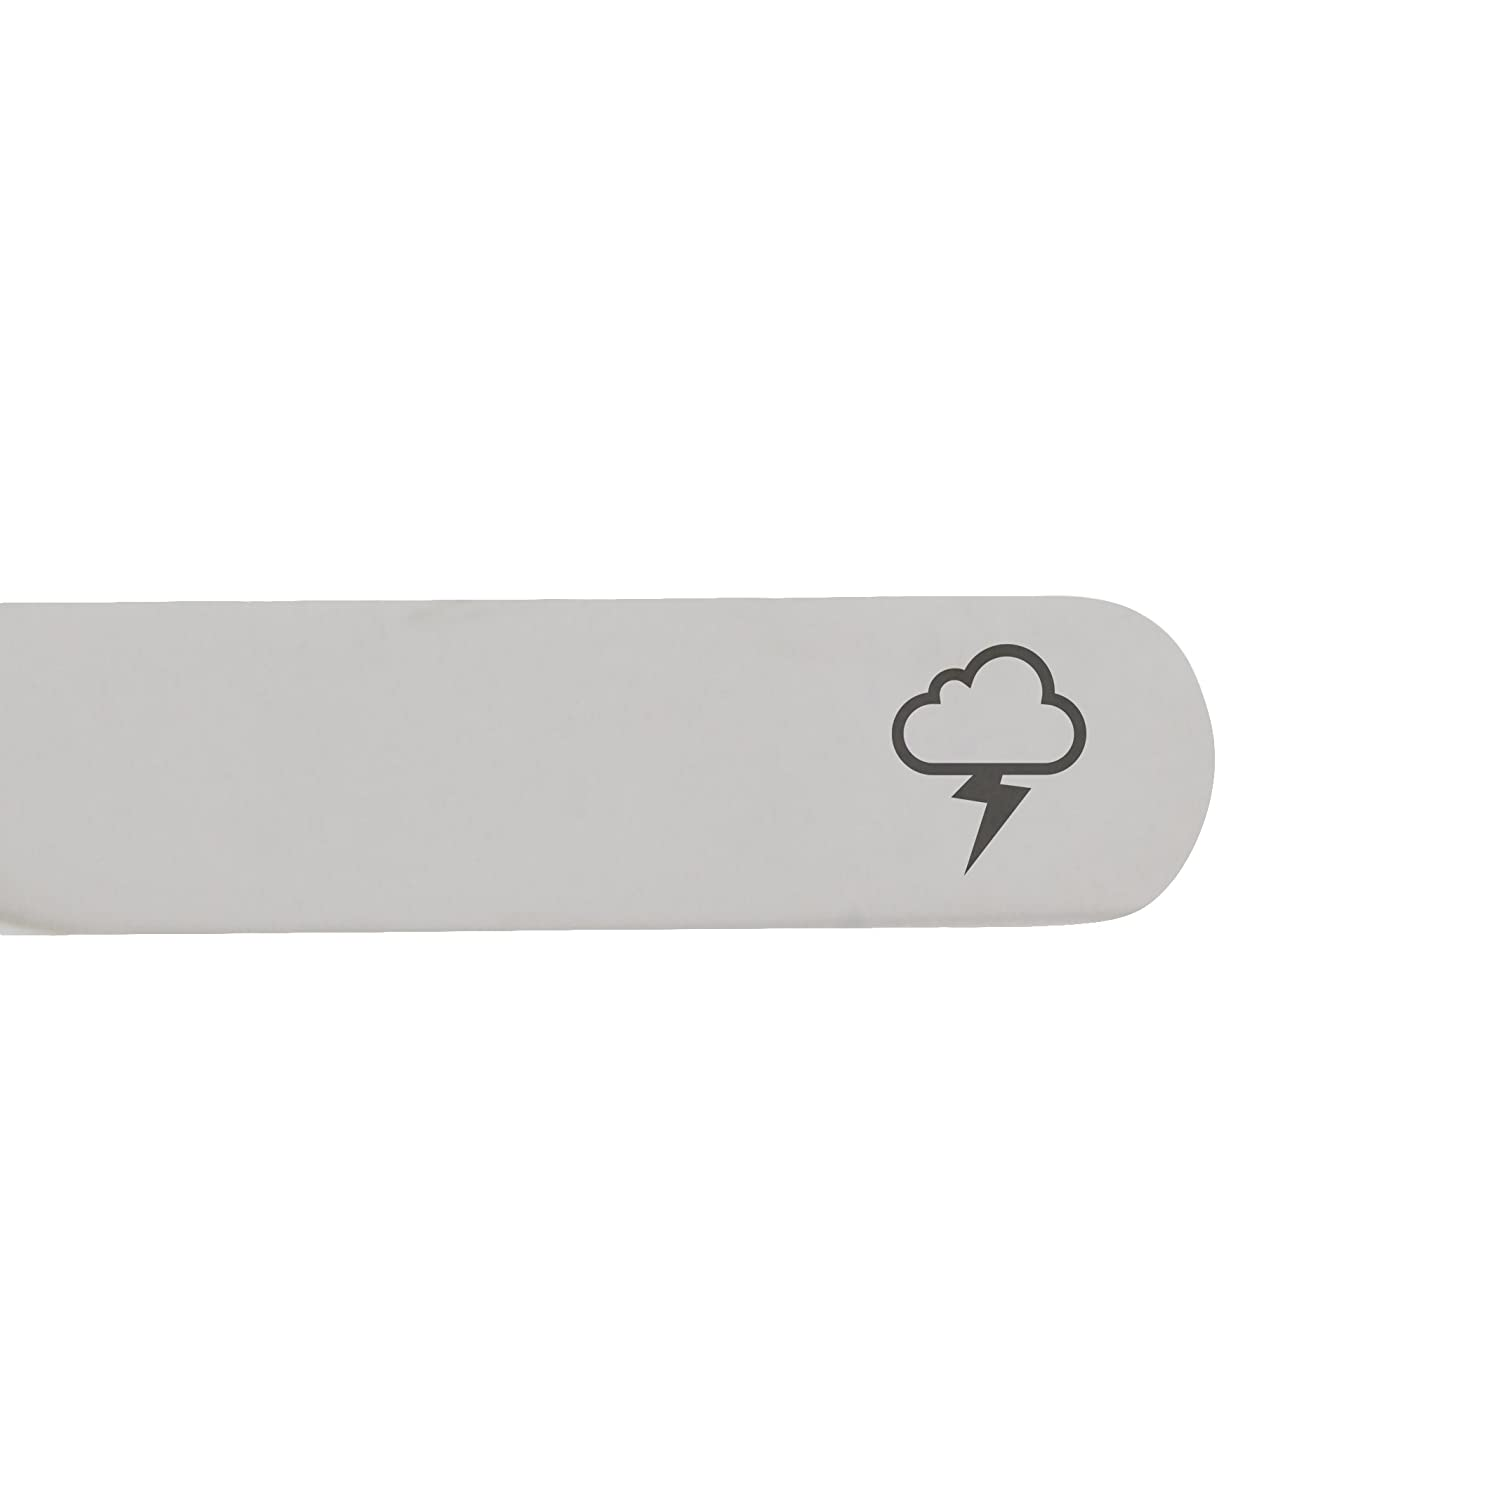 Made In USA 2.5 Inch Metal Collar Stiffeners MODERN GOODS SHOP Stainless Steel Collar Stays With Laser Engraved Thunder Design